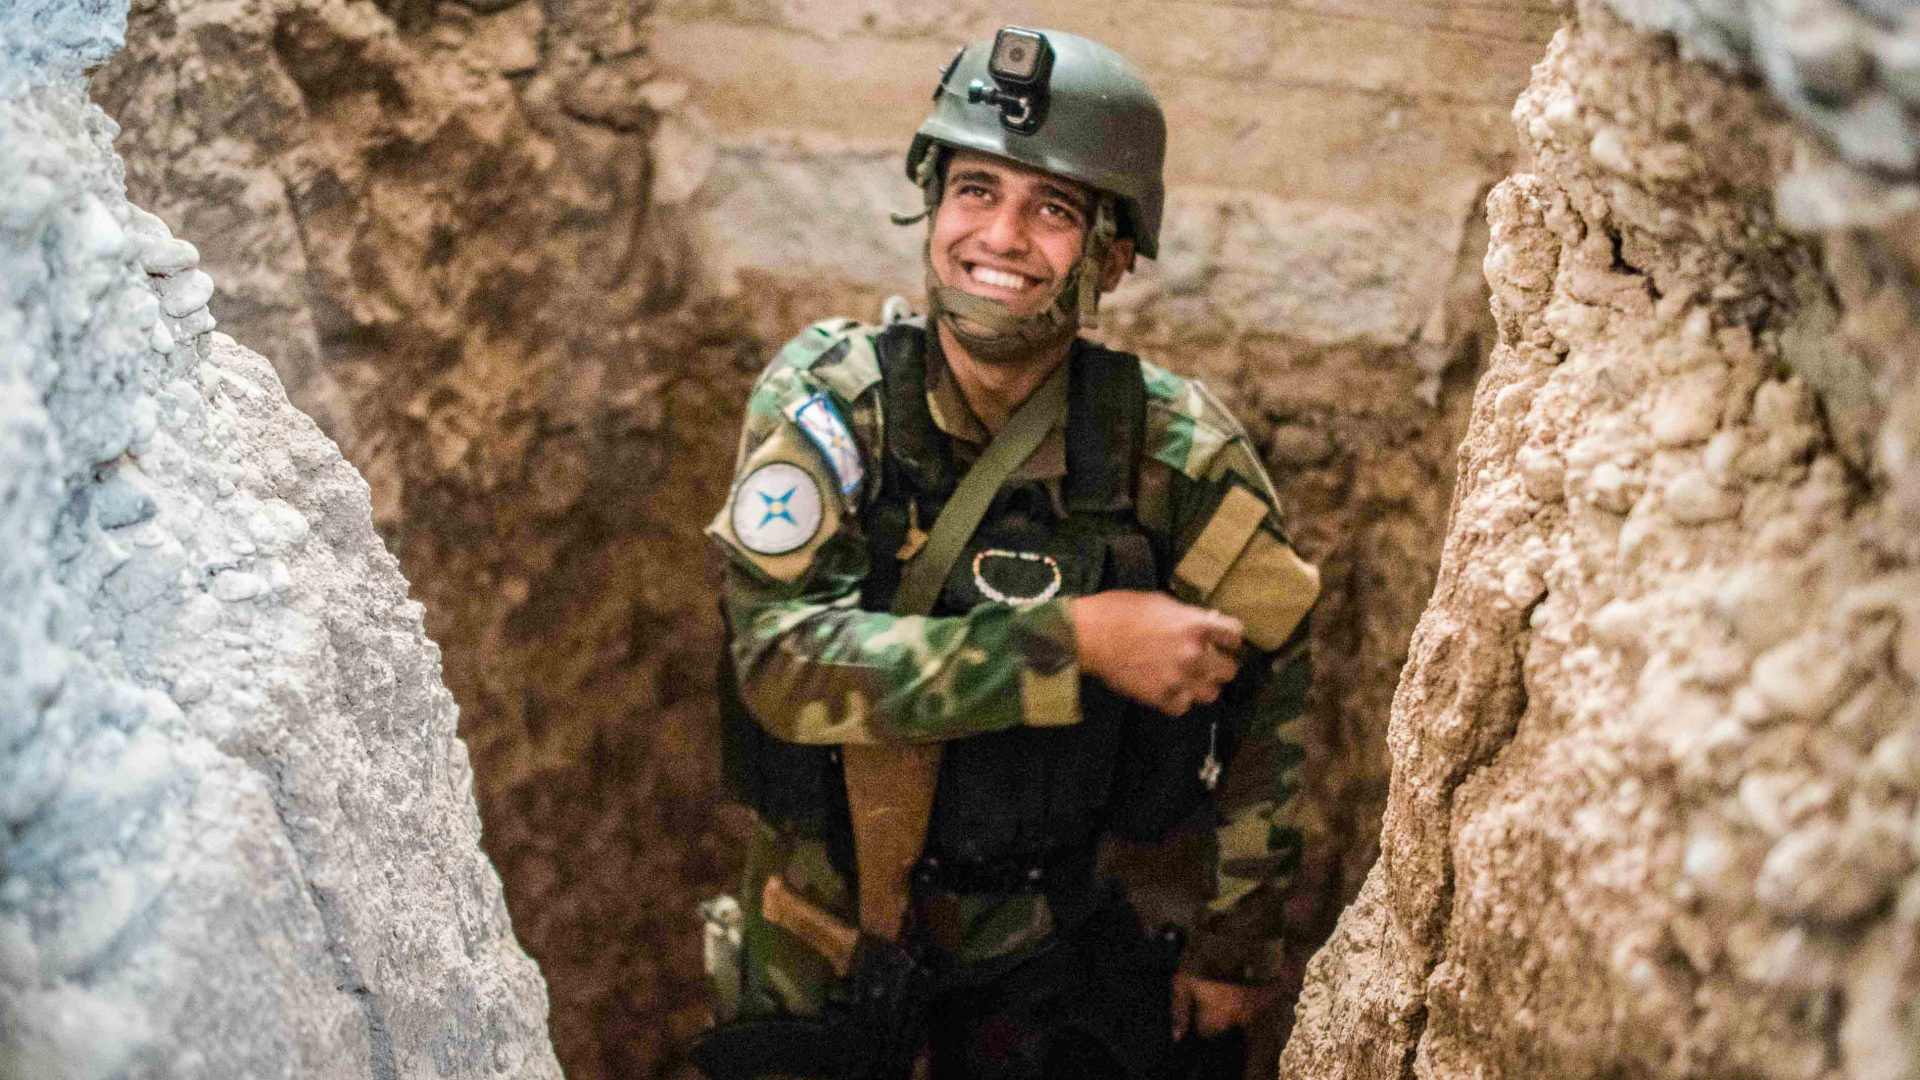 A militiaman inspects a tunnel dug by ISIS fighters in Qaraqosh, Iraq.